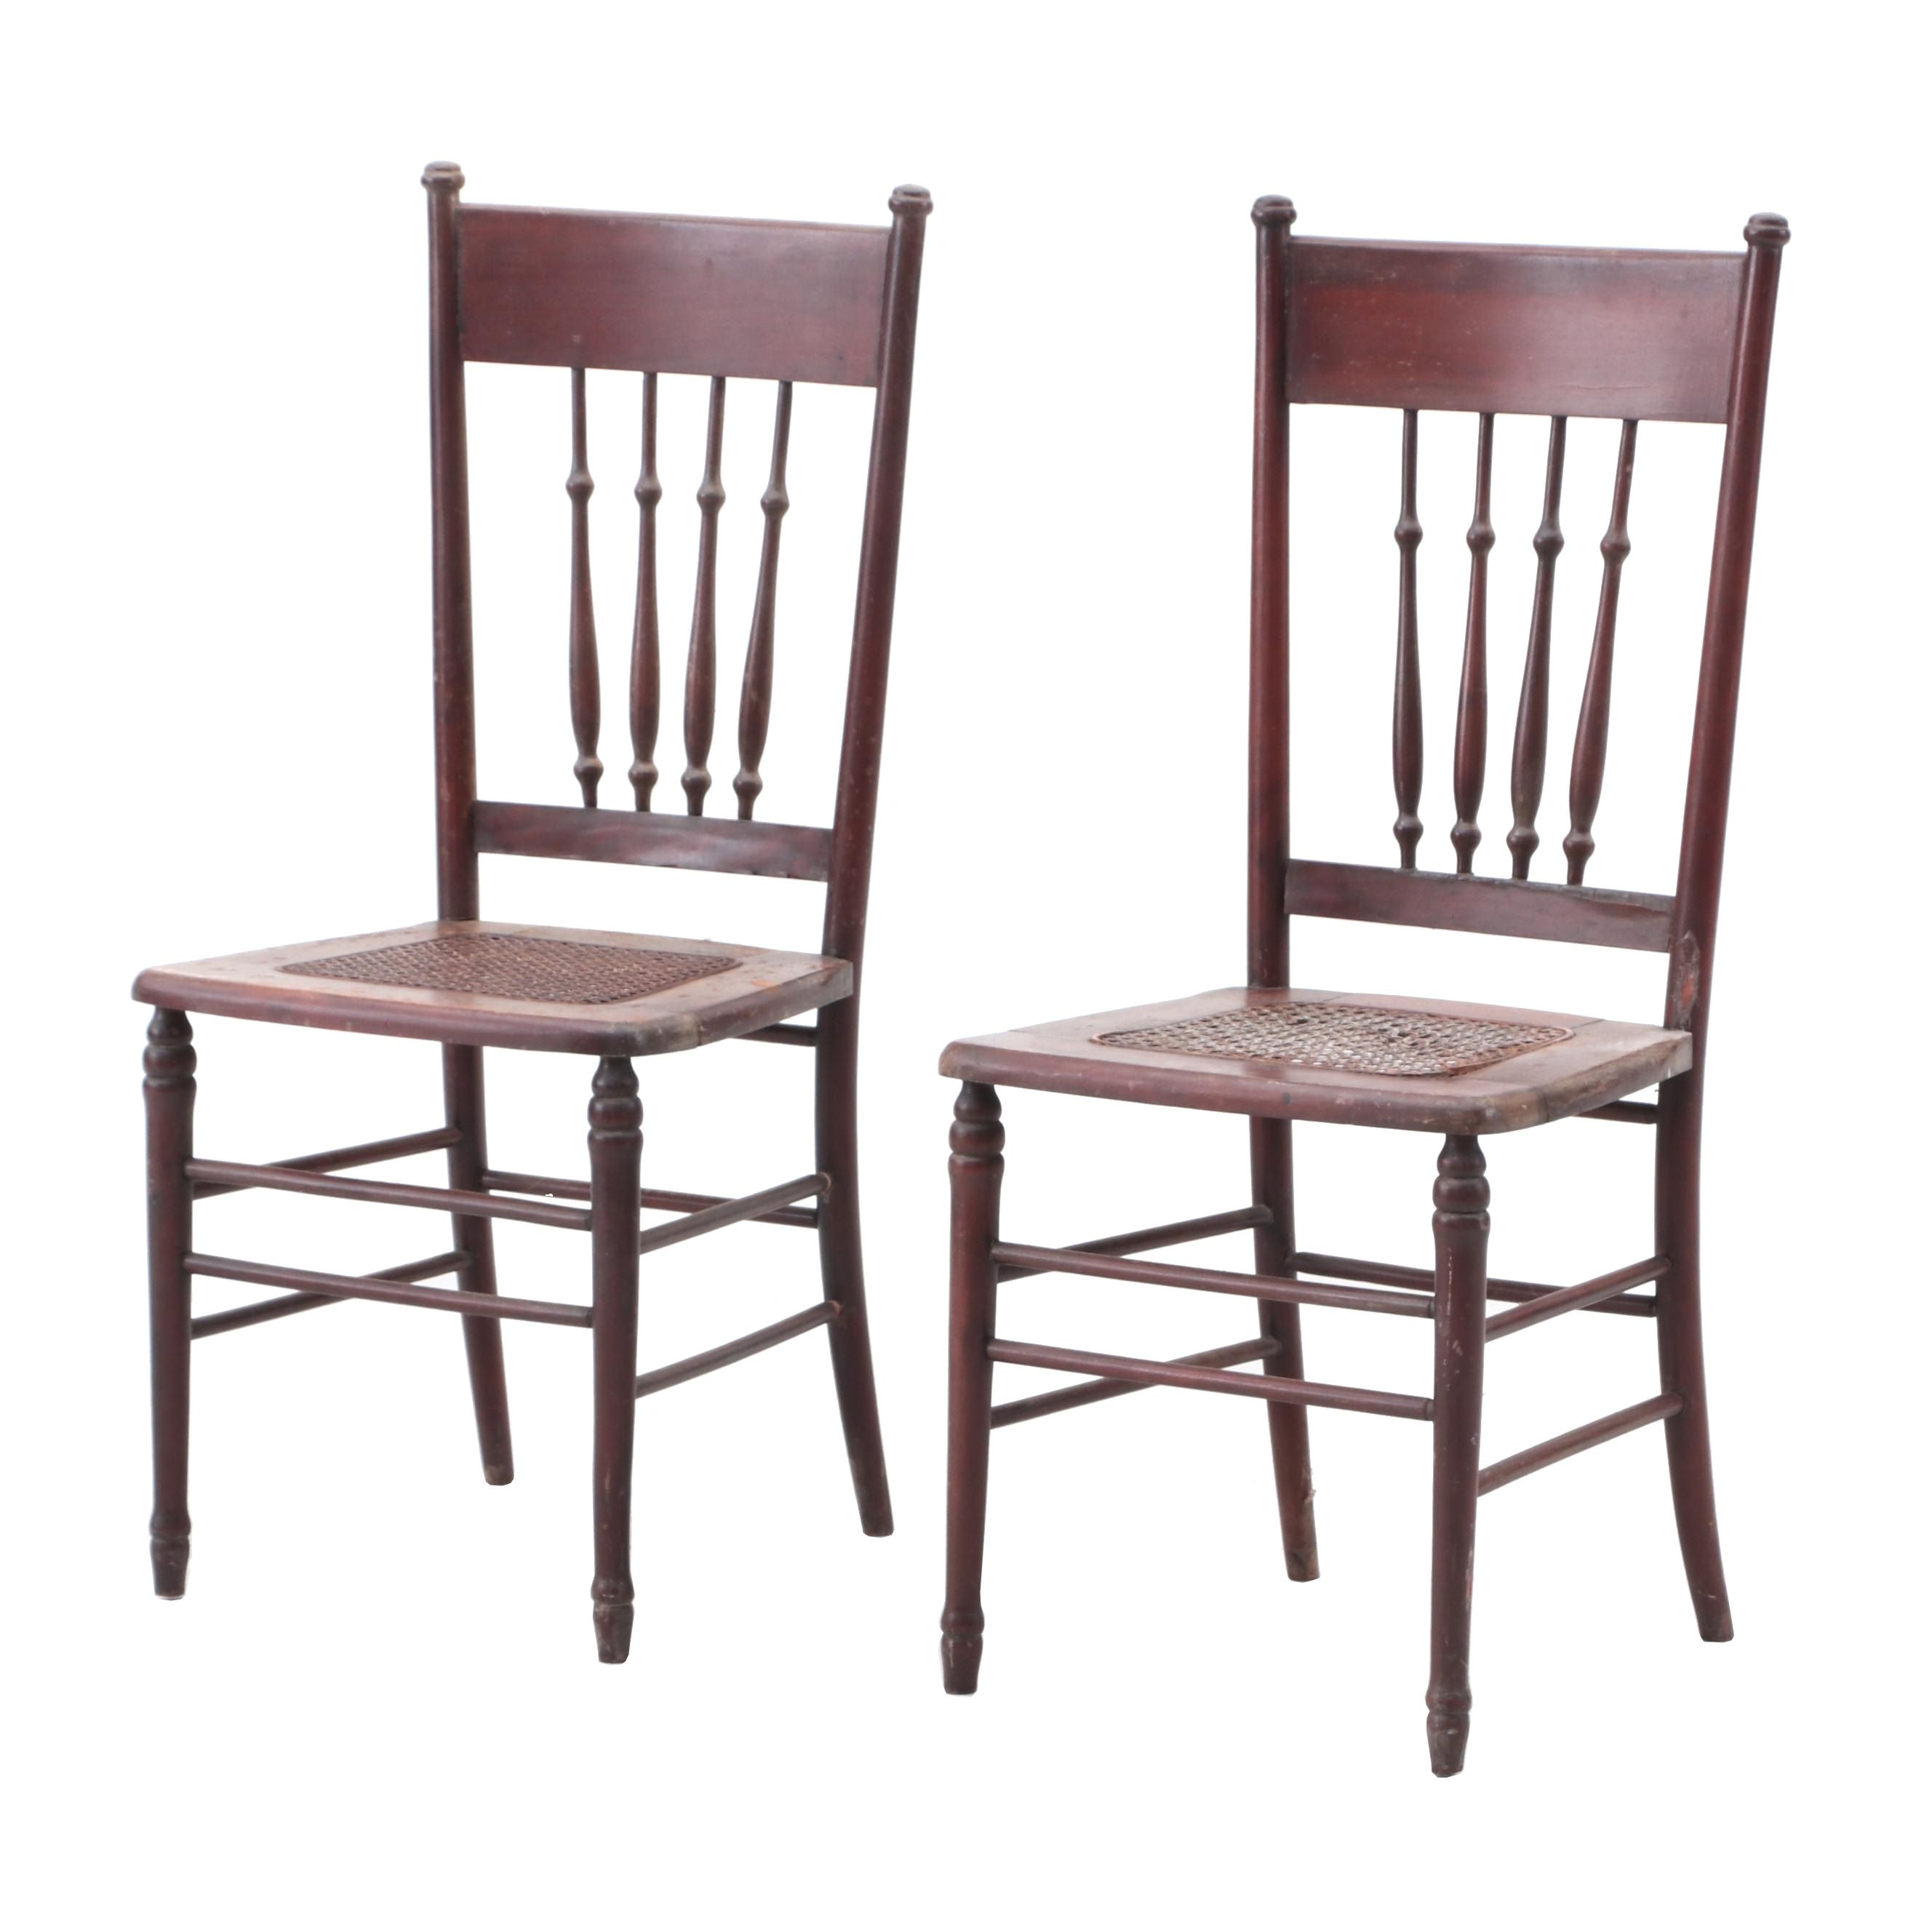 1890s Caned Side Chairs